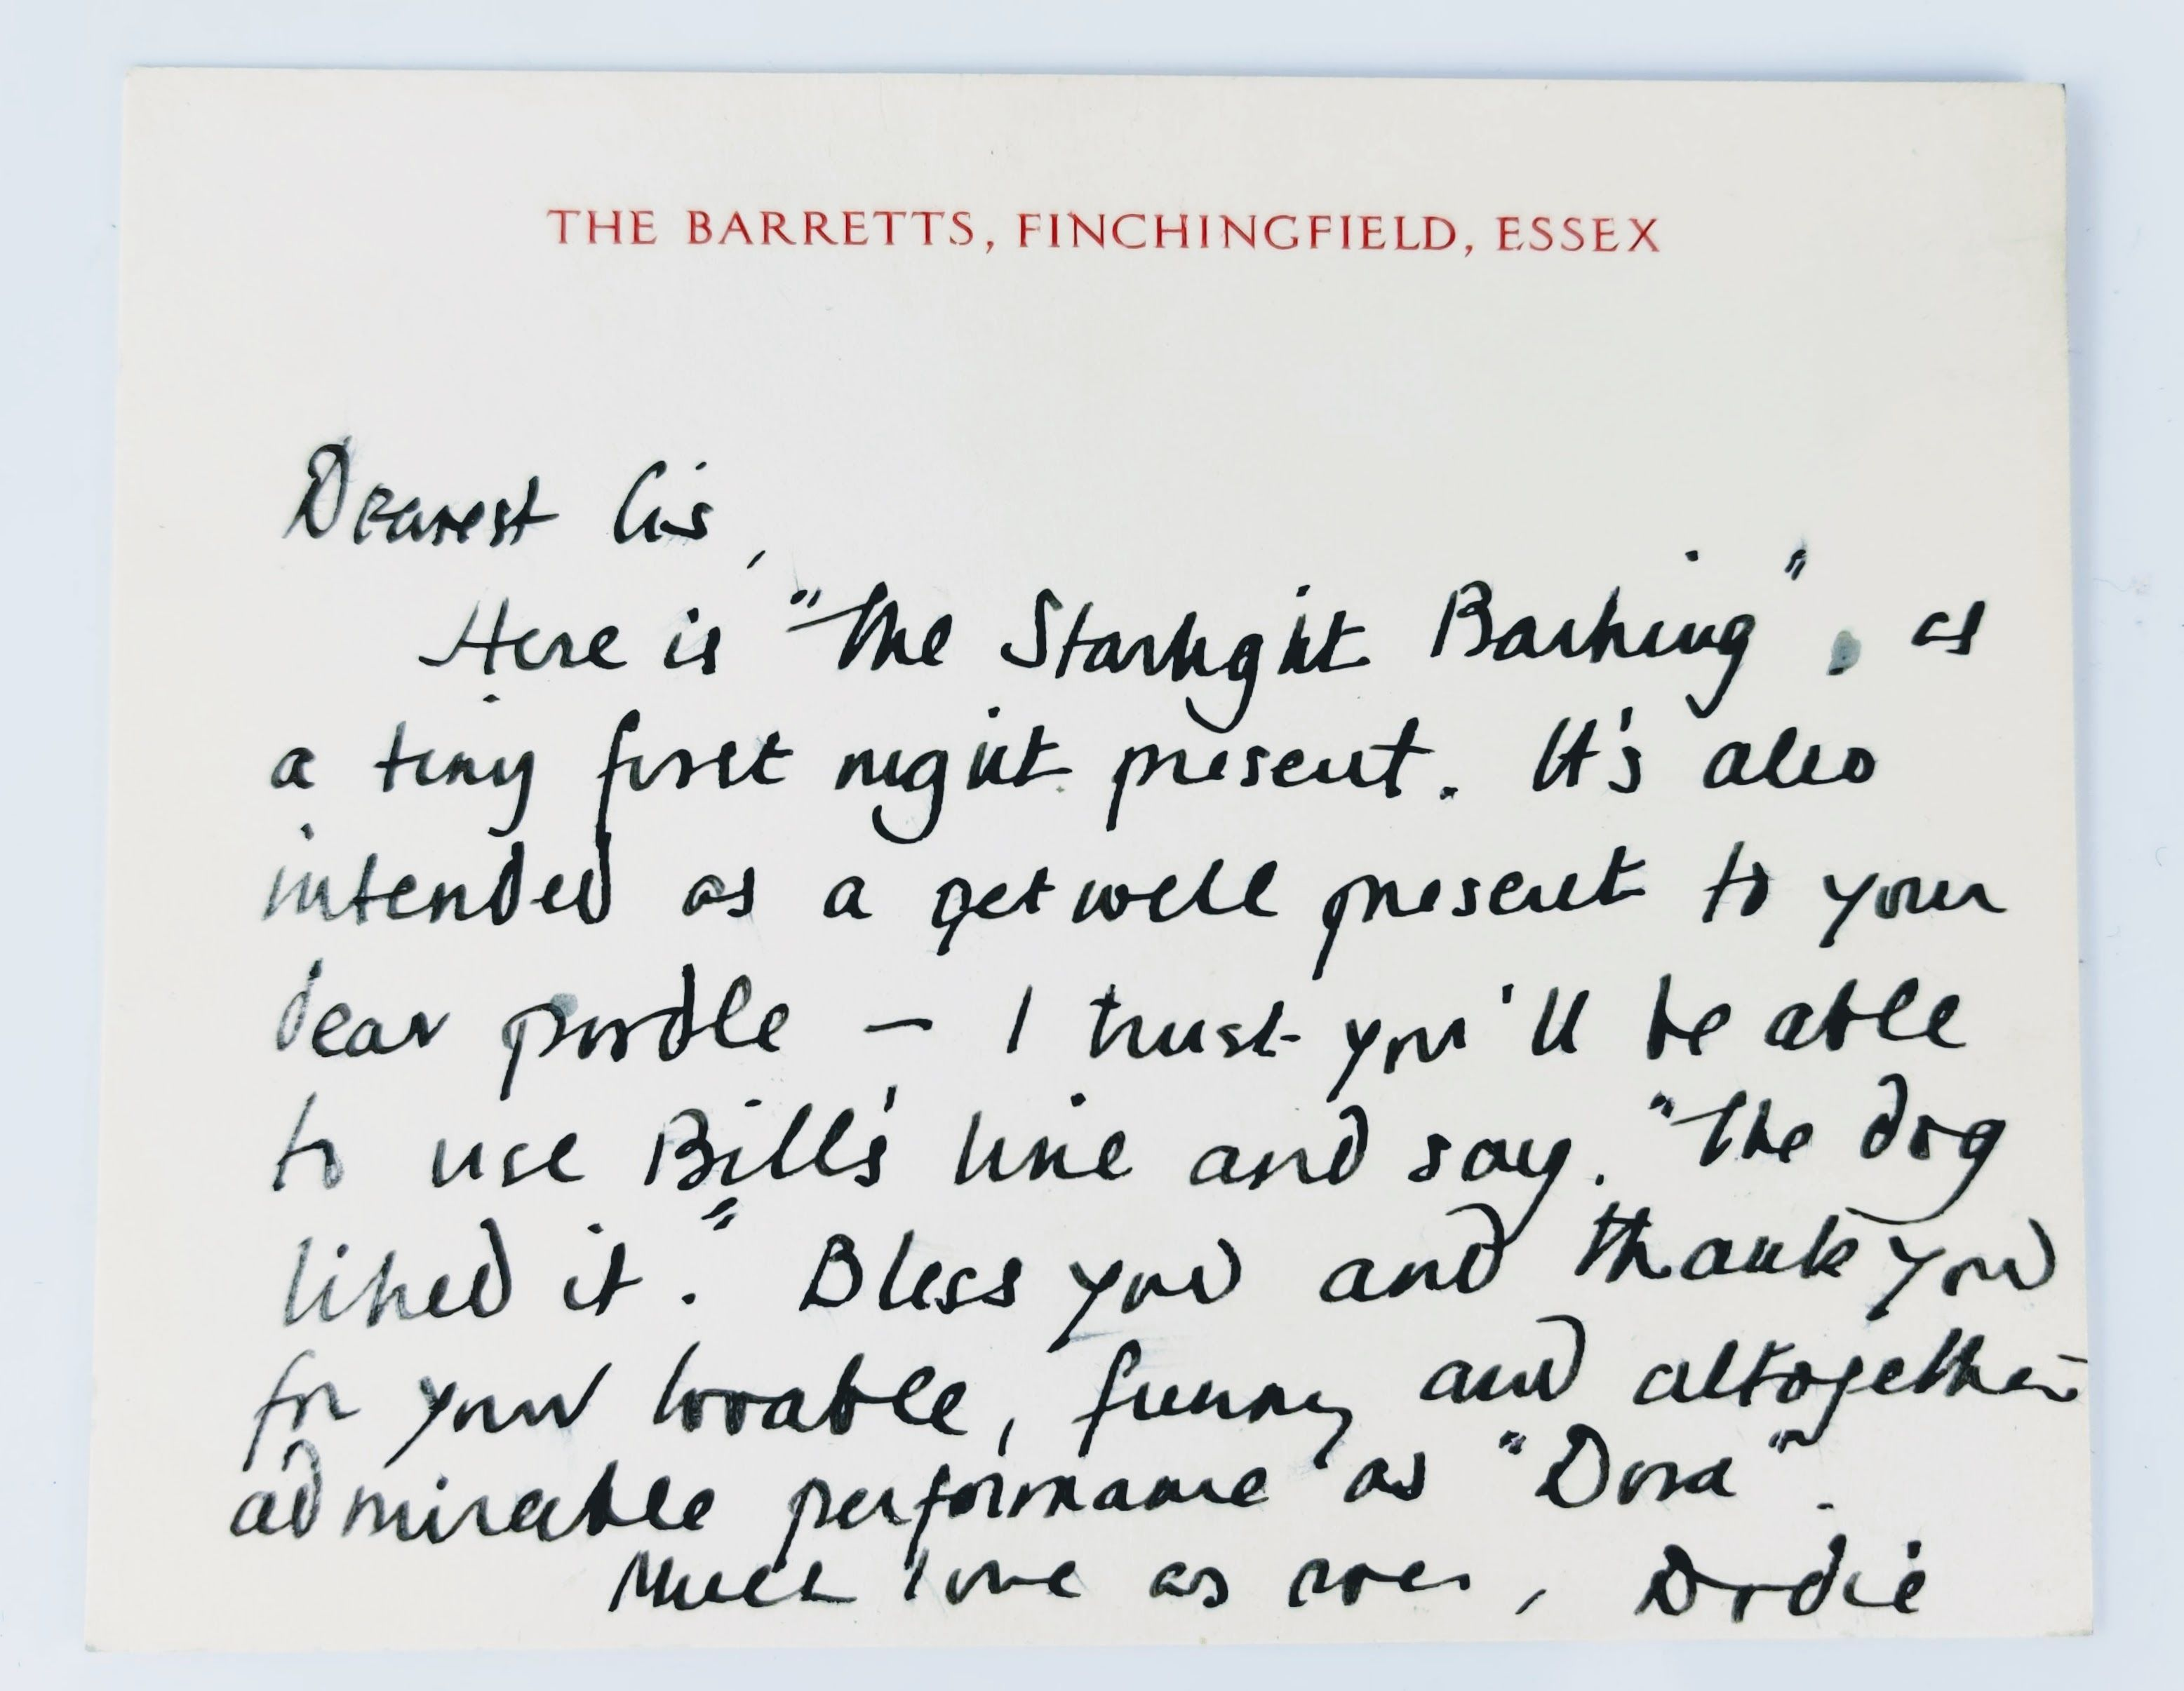 The Starlight Barking: More About The Hundred and One Dalmatians - Signed, Inscribed and Dated by the Author (photo 5)